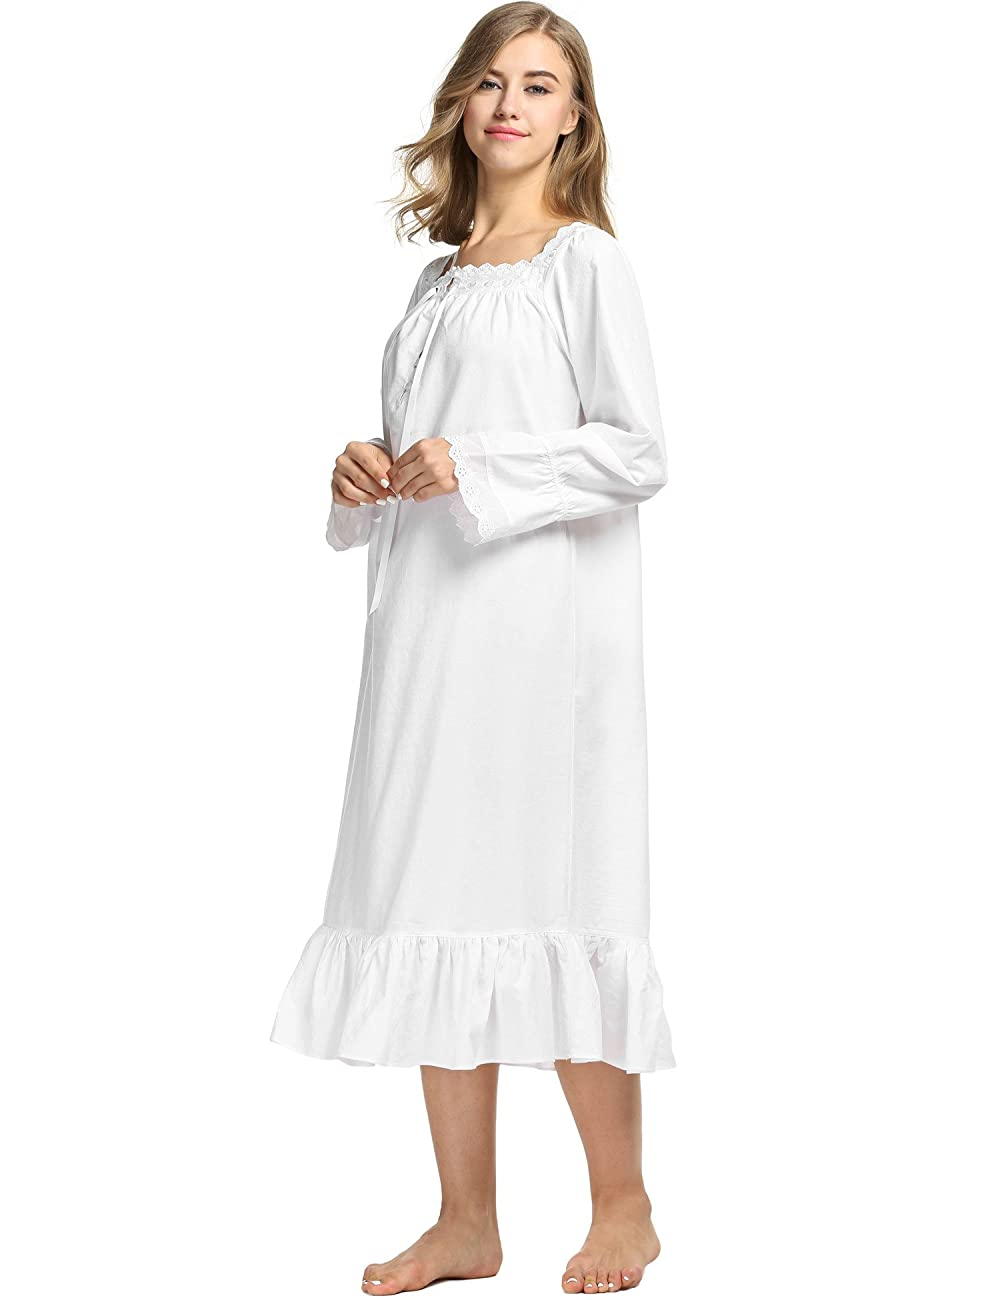 Avidlove Womens Cotton Victorian Nightgowns Romantic Long Bell Sleeve Nightshirt 3